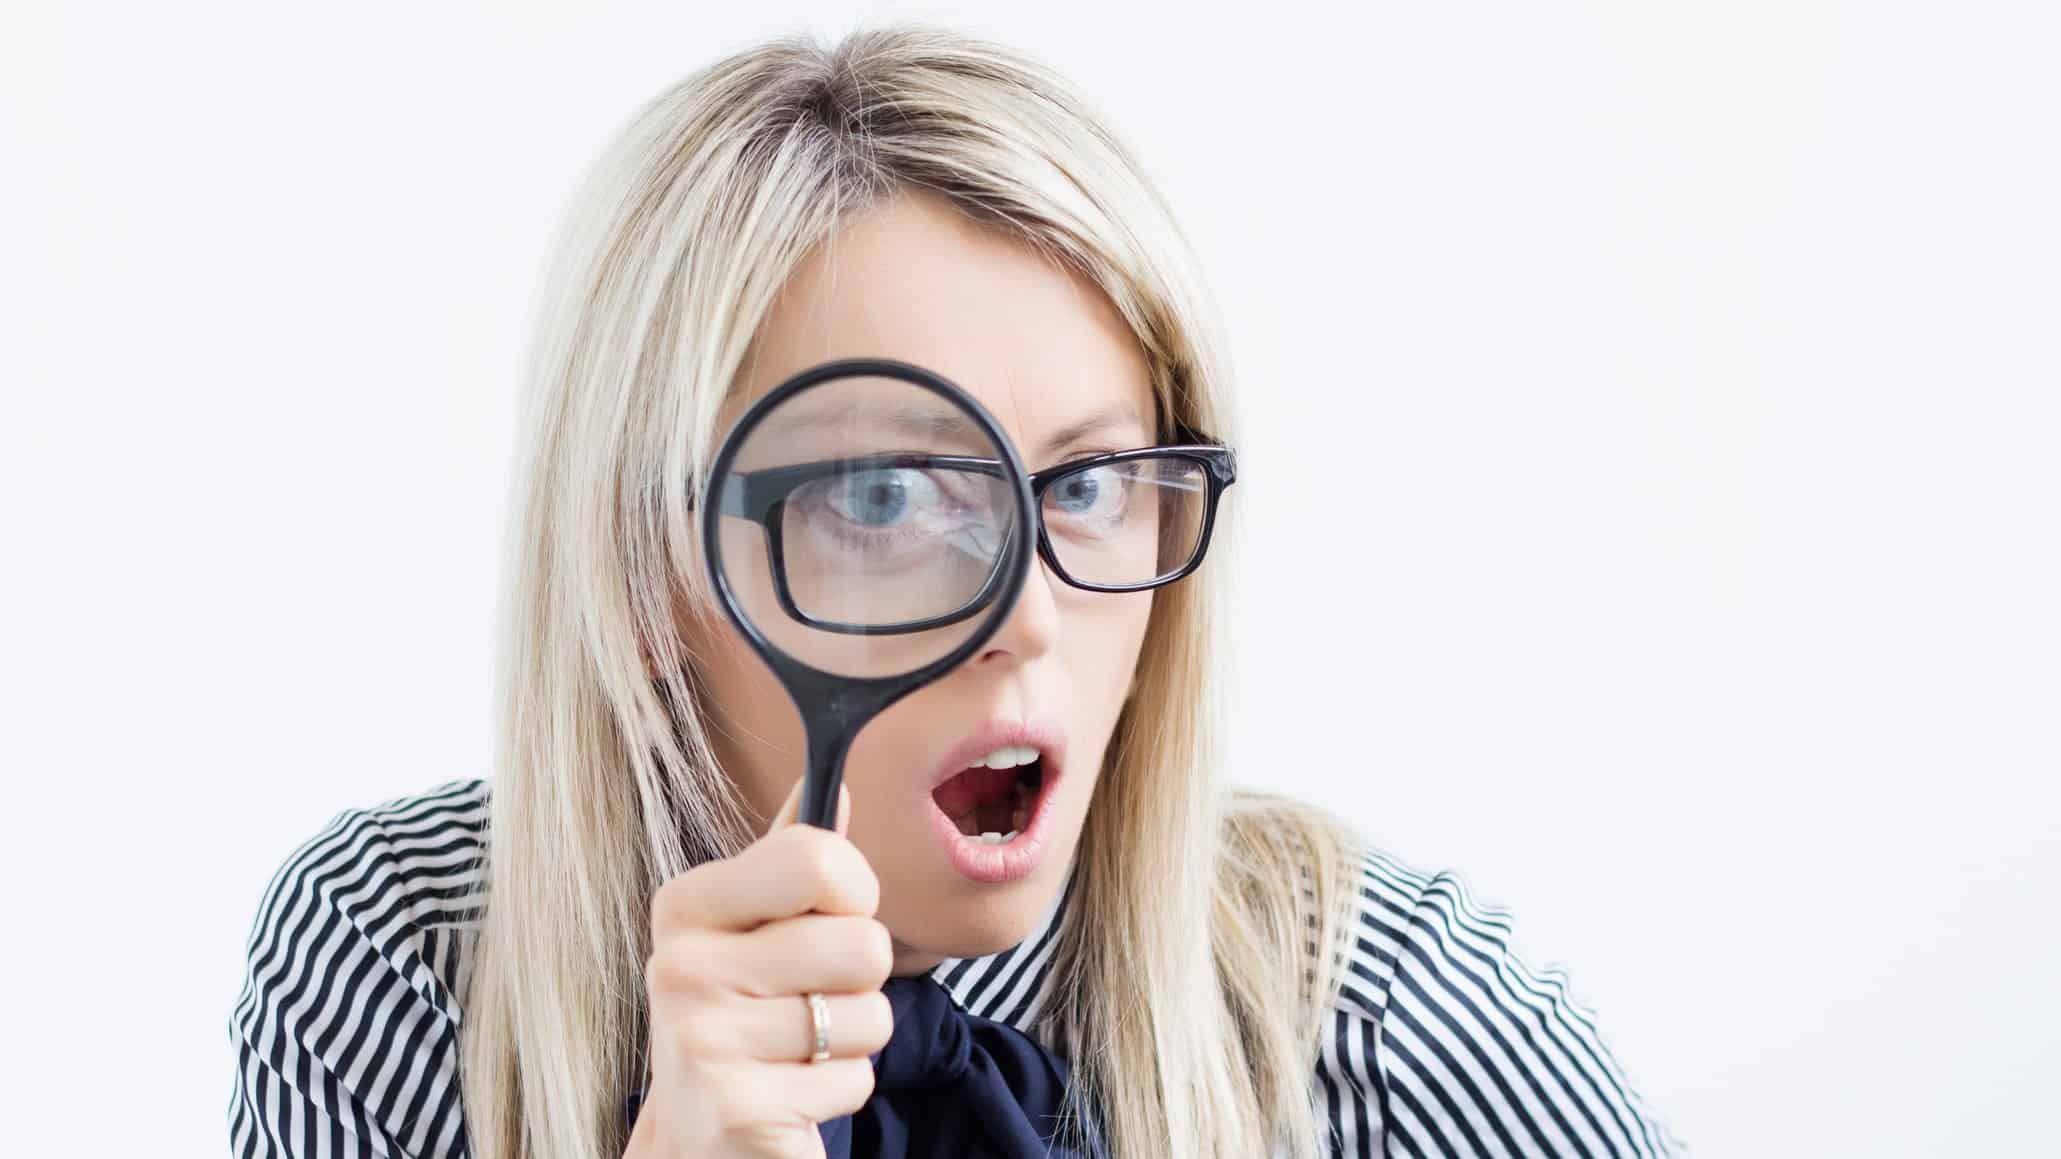 asx share price on watch represented by investor looking through magnifying glass